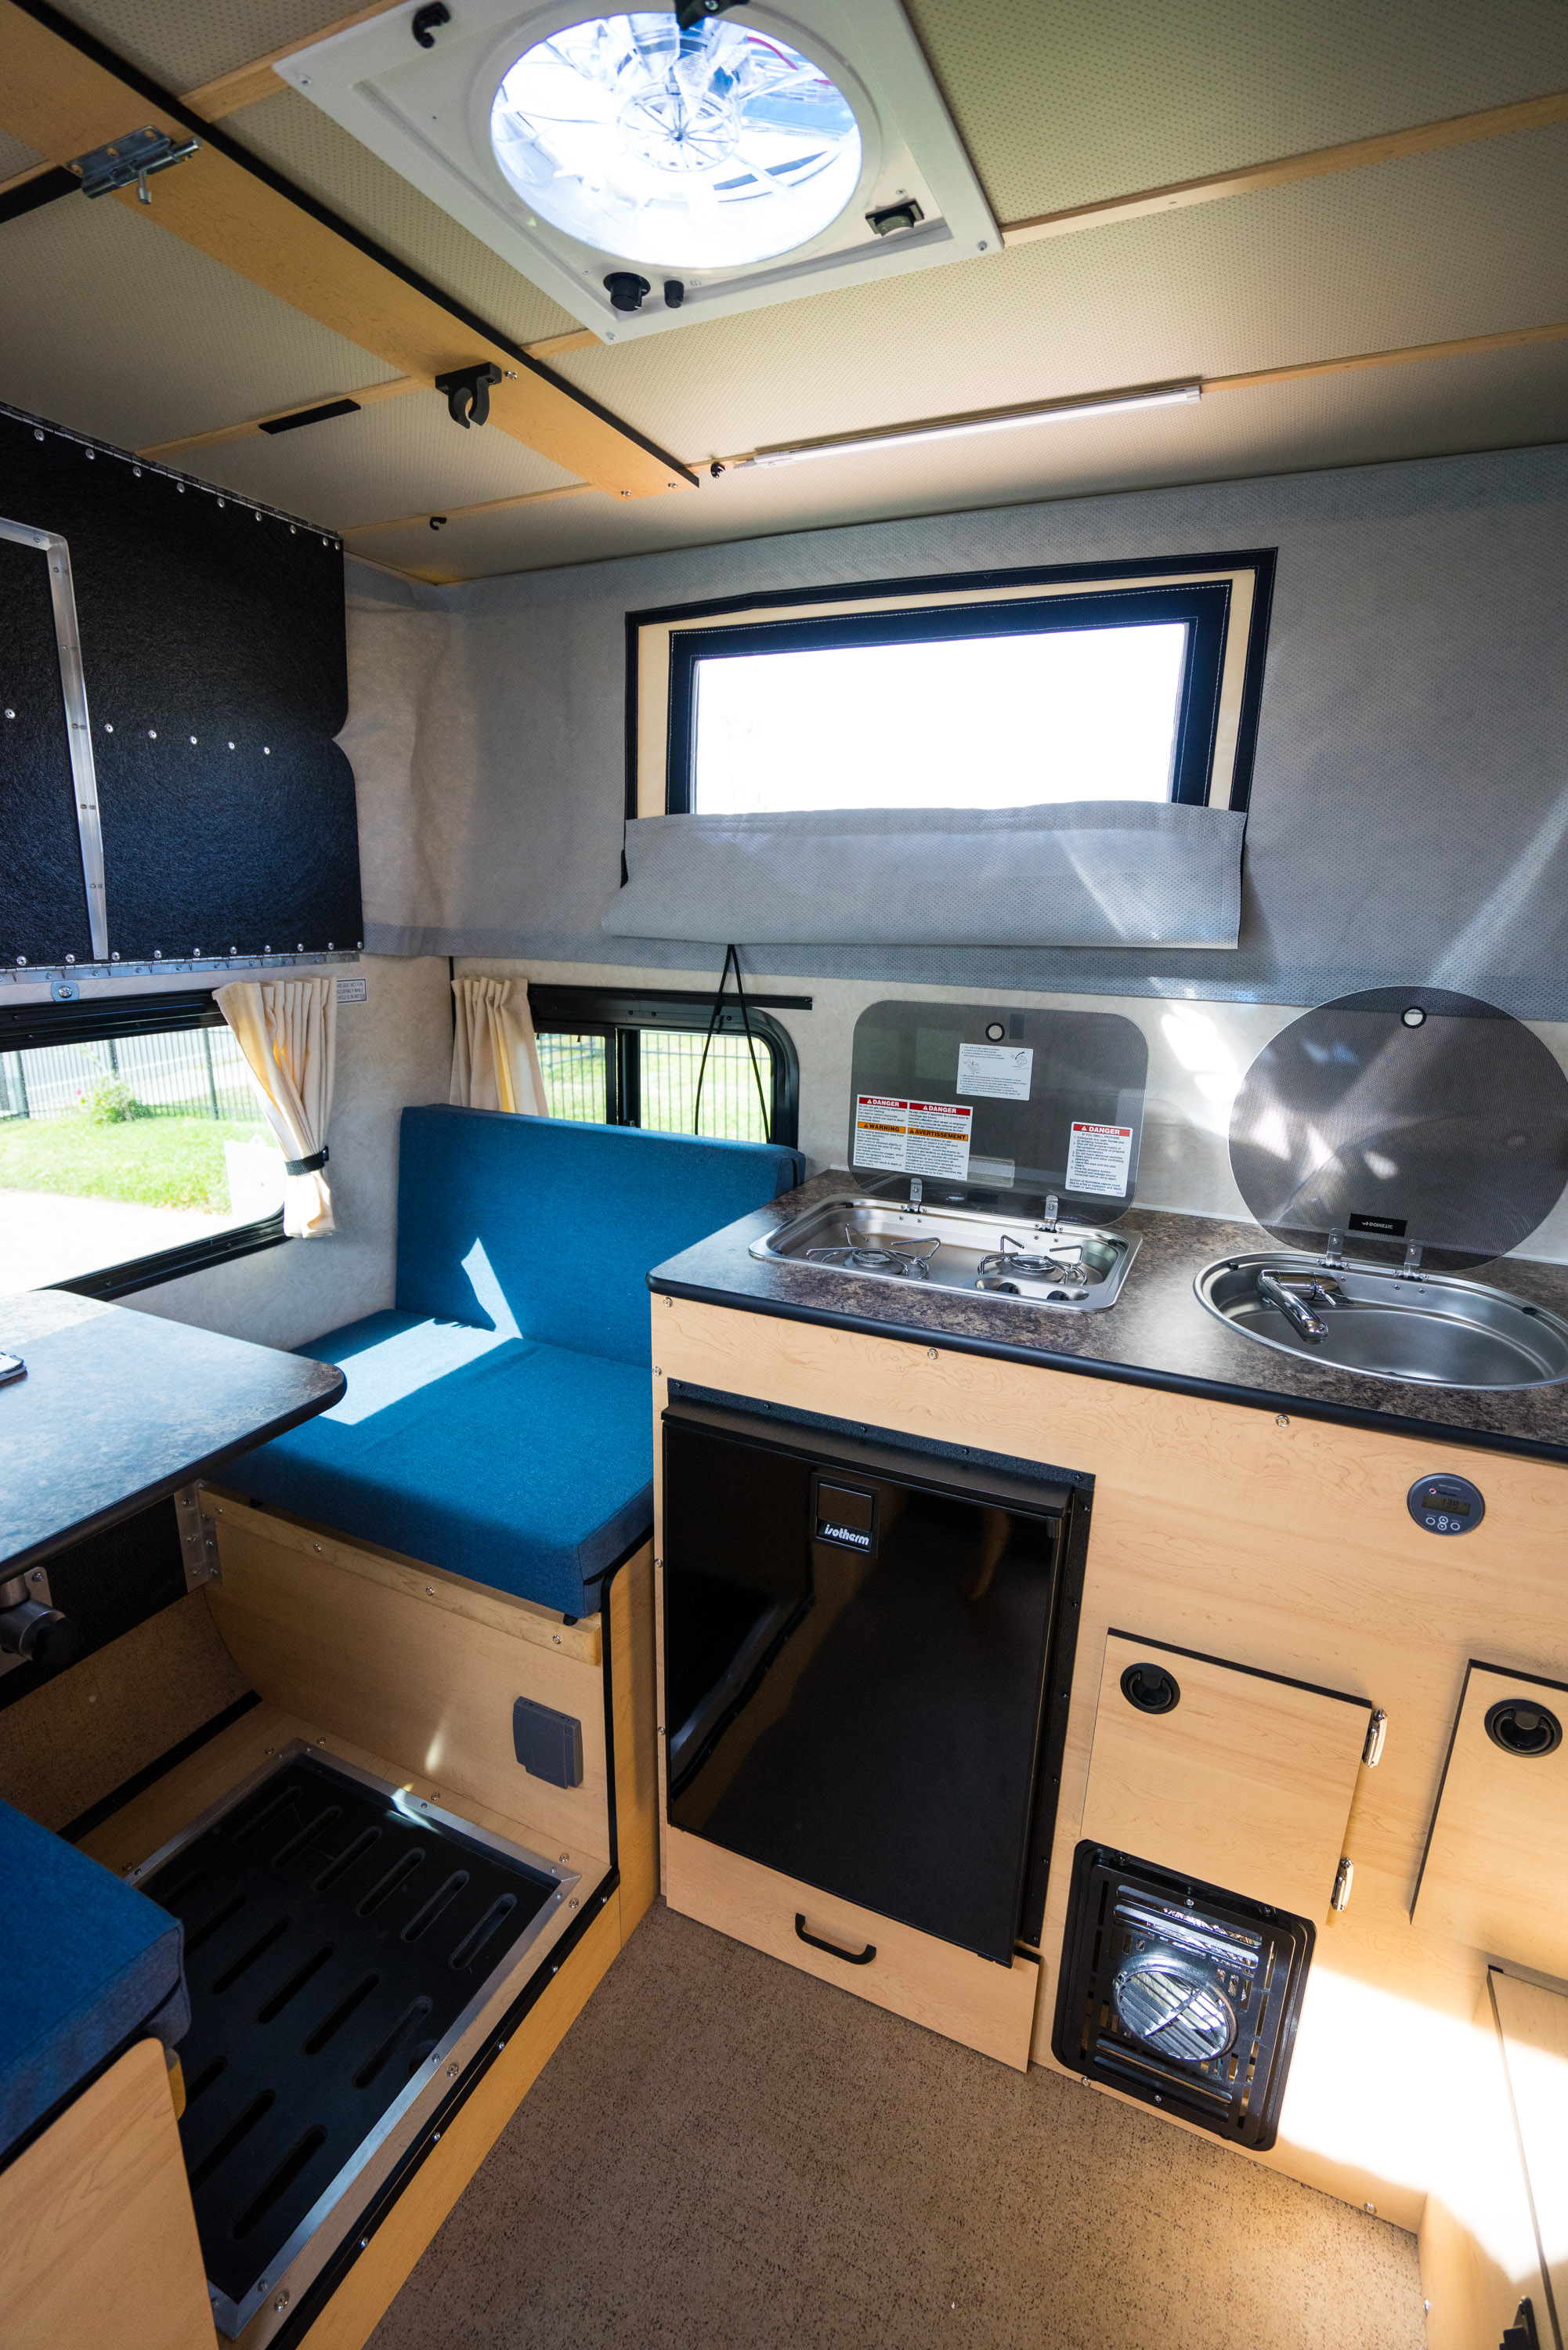 View looking towards the back driver side of the camper